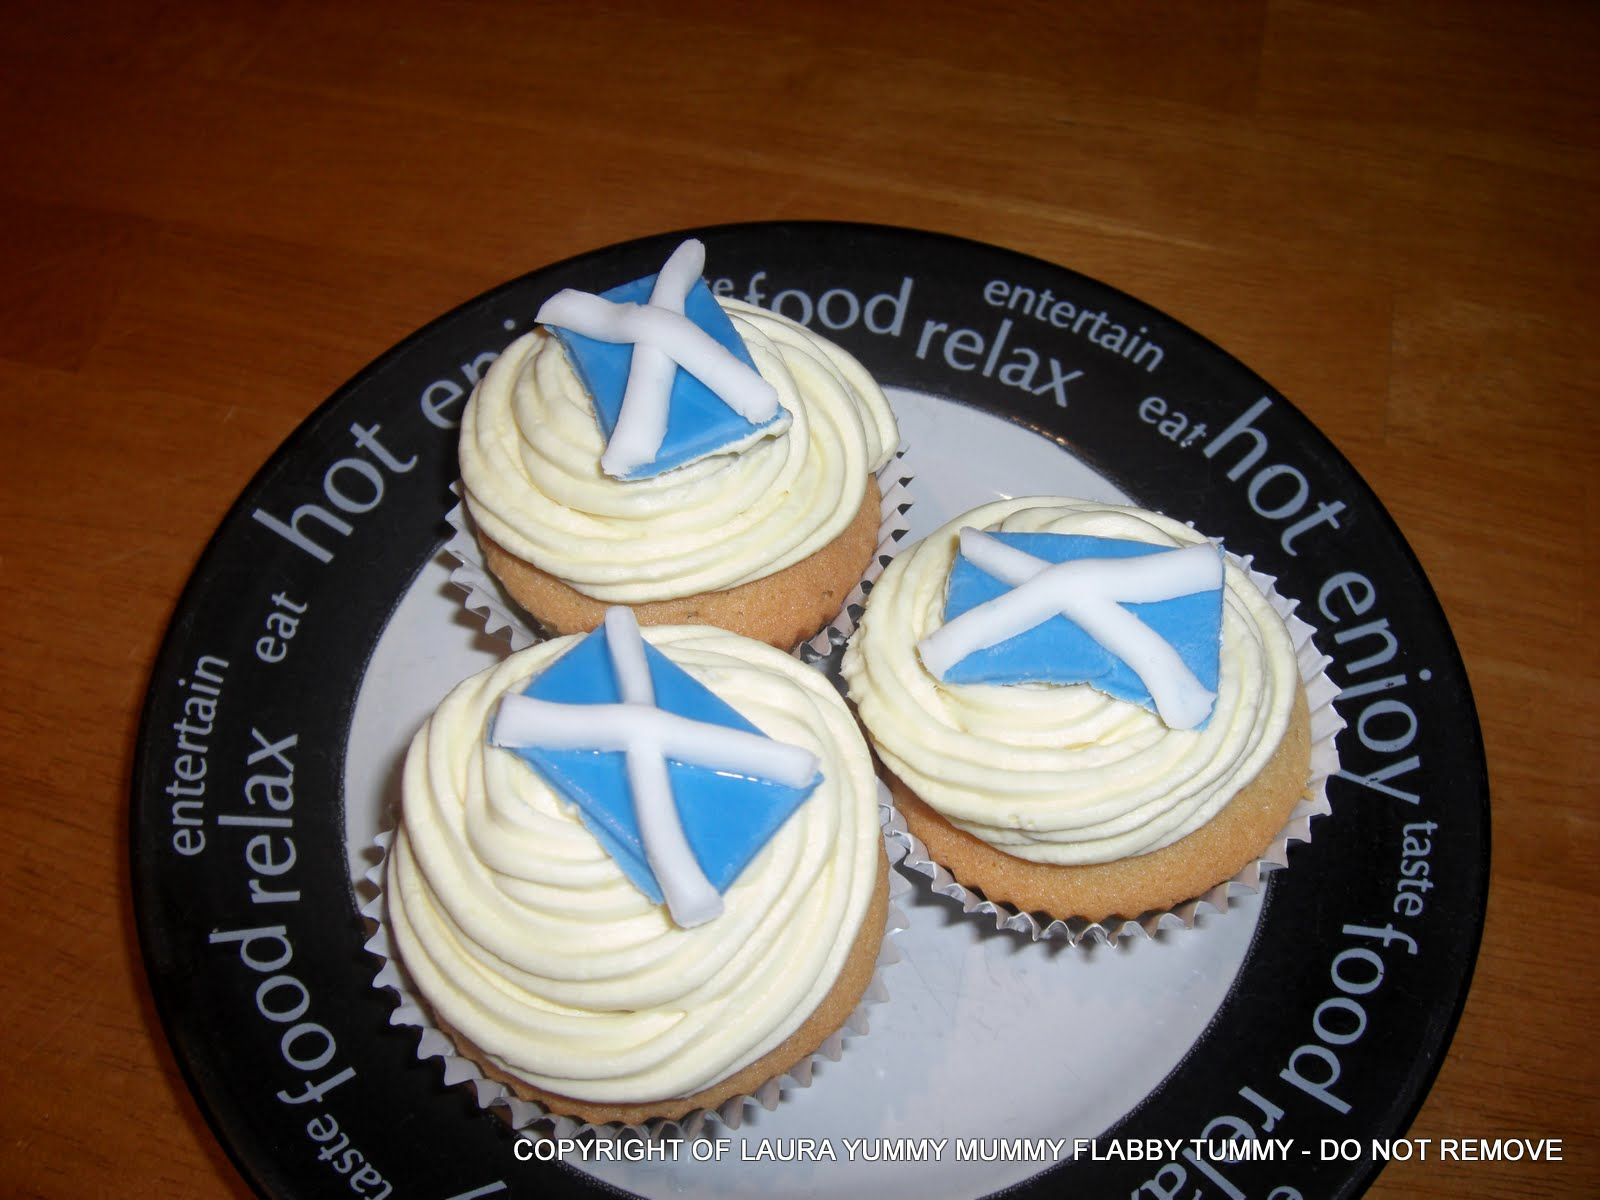 St Andrew's Day cakes visit www.thepartyguide.co.uk for